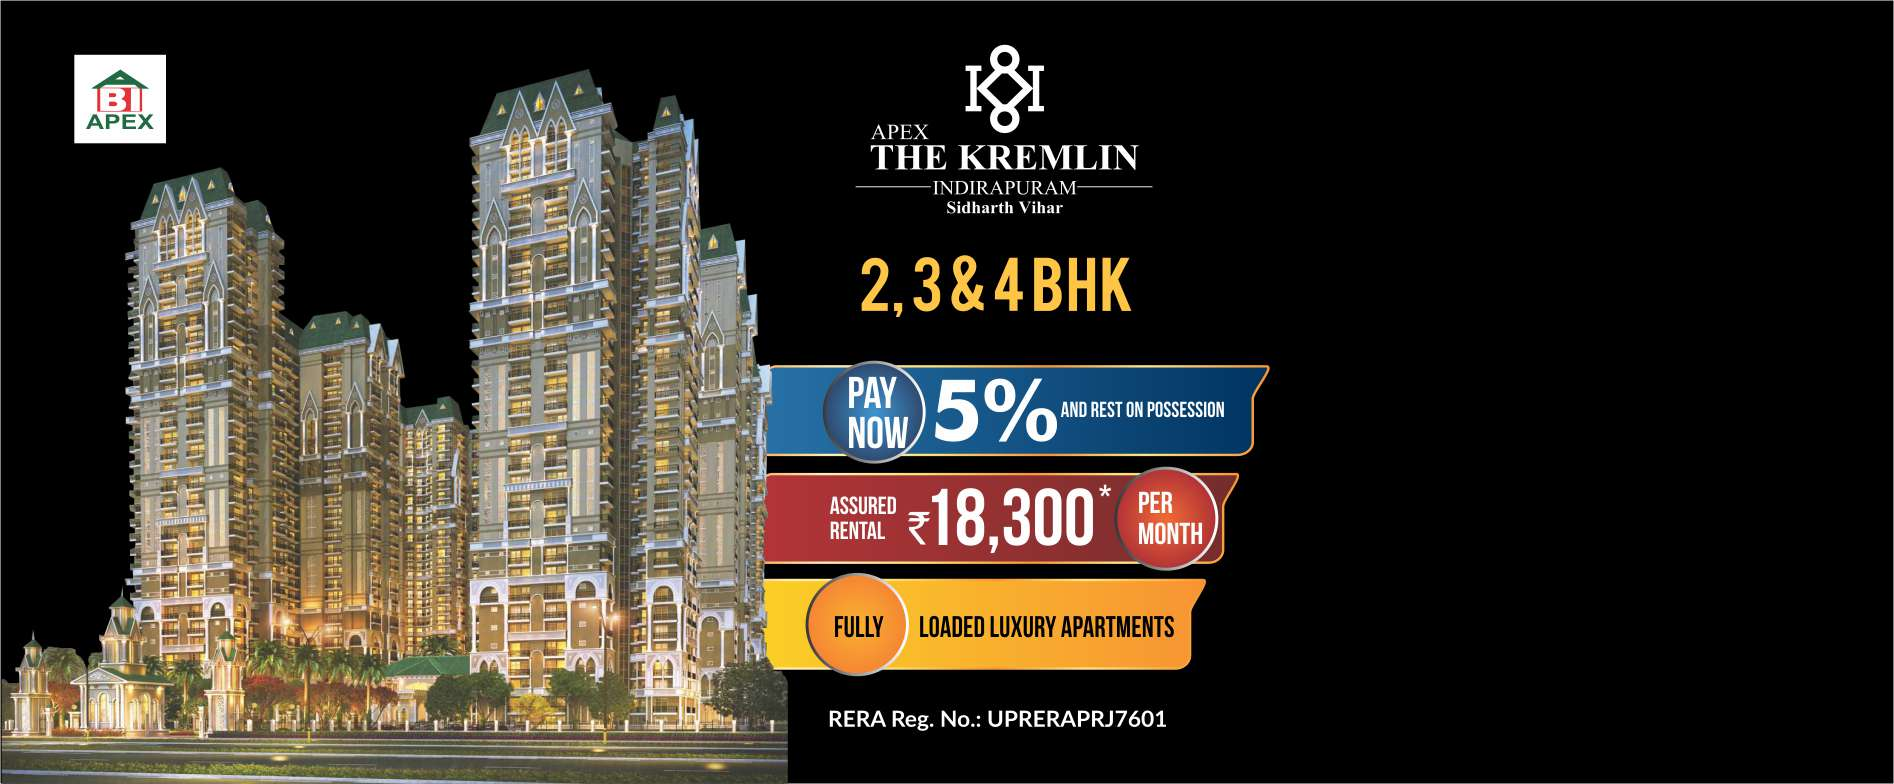 Apex The Kremlin 2, 3BHK for booking call us: +918010654321